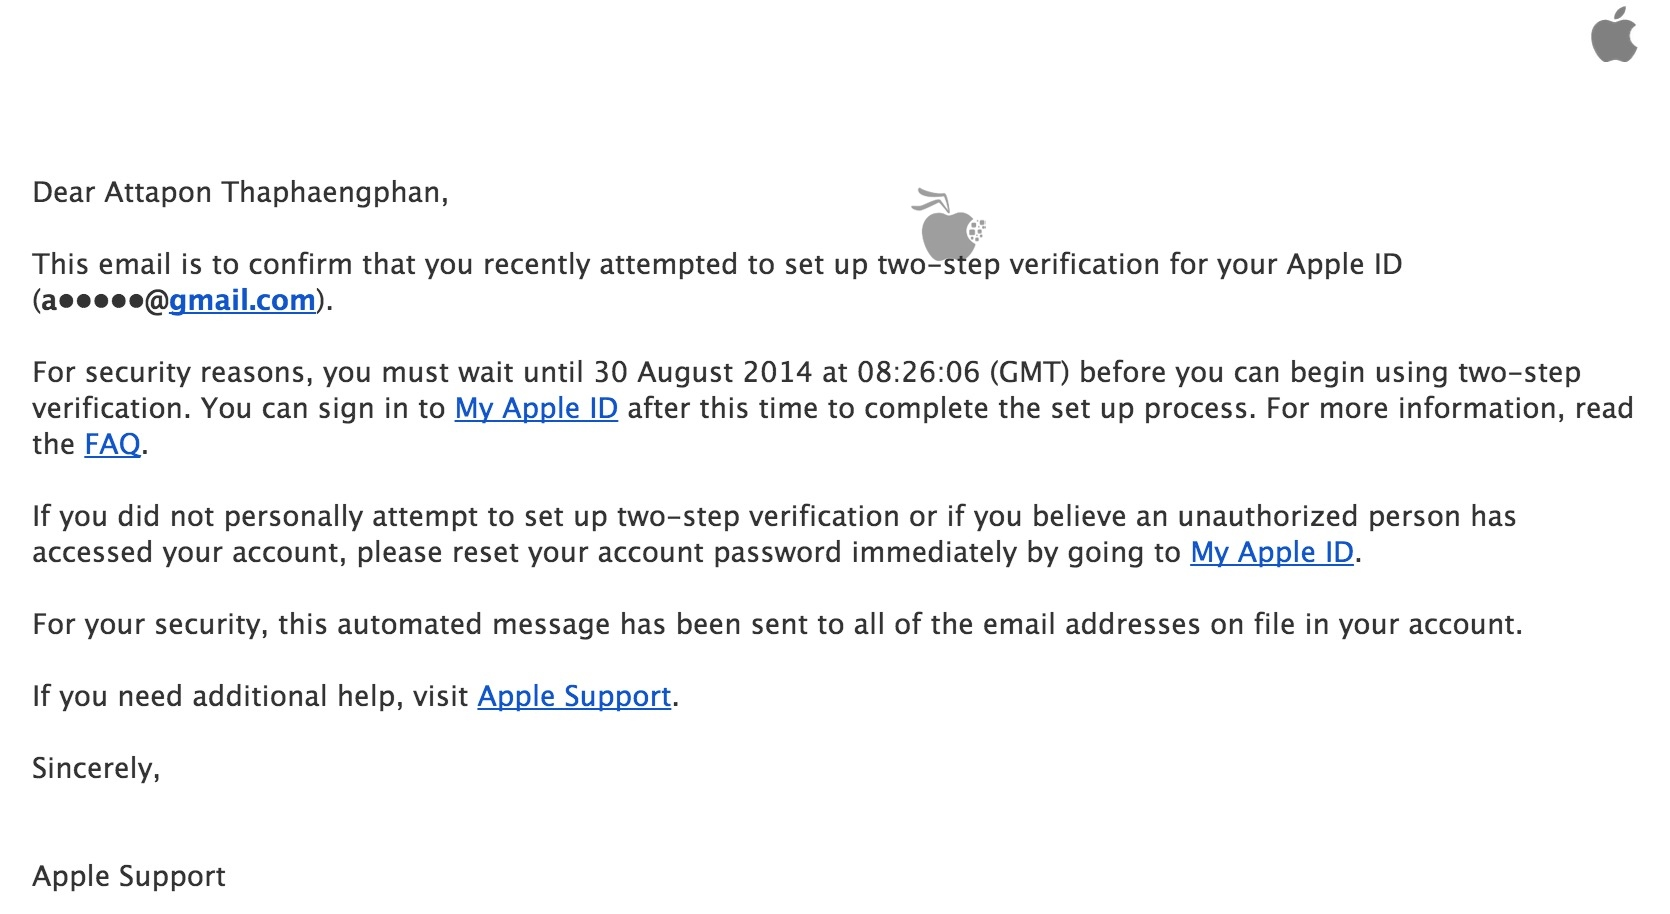 apple-id-2step-verification-07